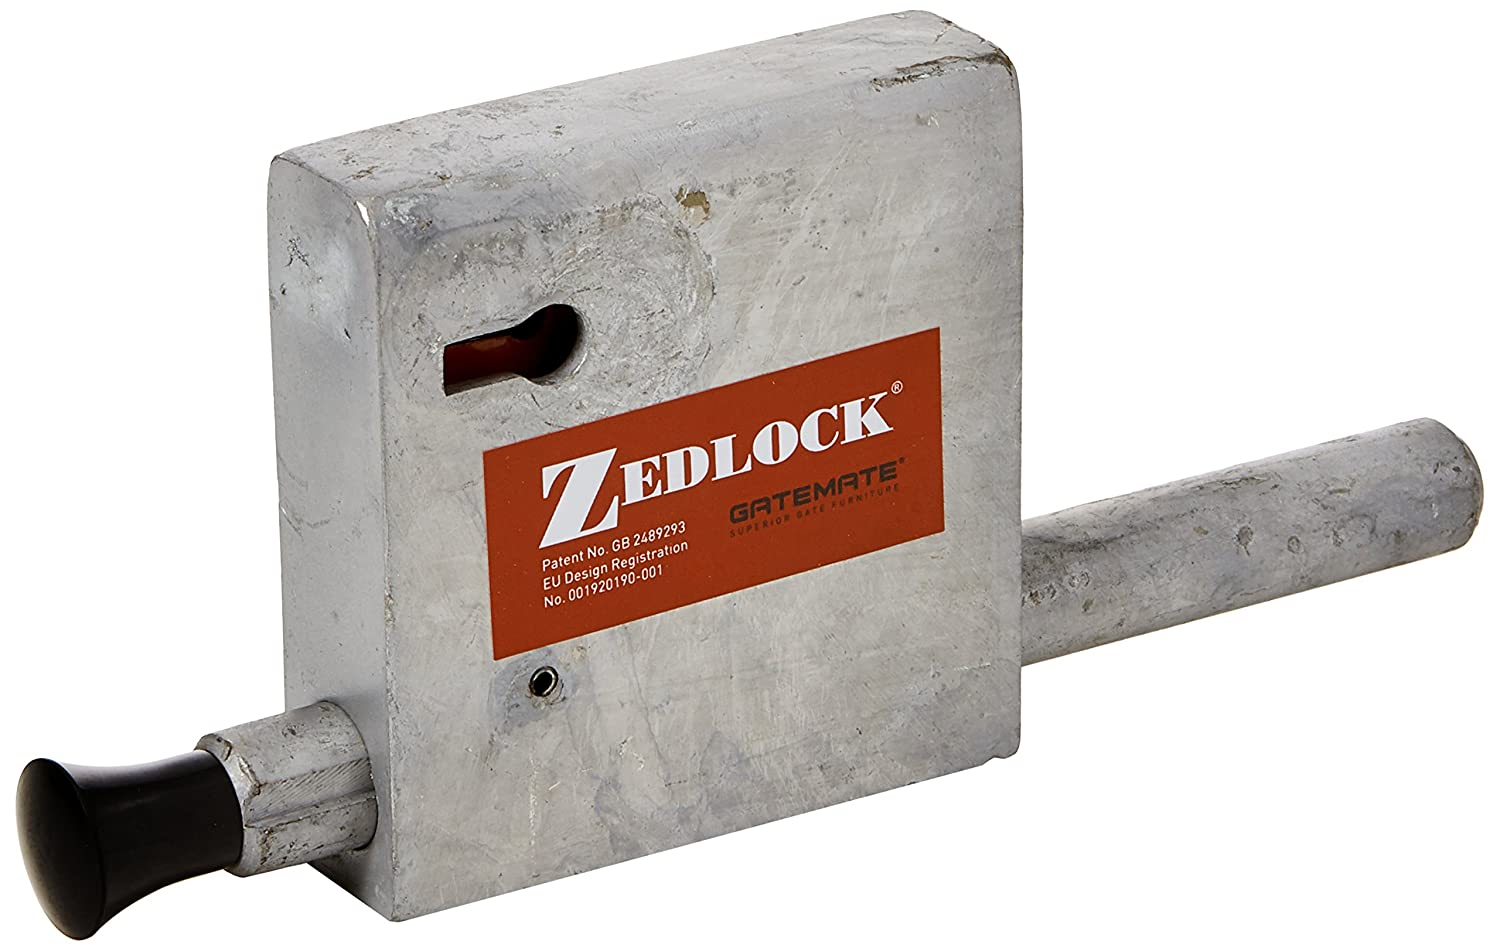 Zedlock 8900001 Throw Multi-Lever Zed Lock for 25 mm Gate P253, Galvanised, 70/100 mm BJA Trading t/a Birkdale Sales